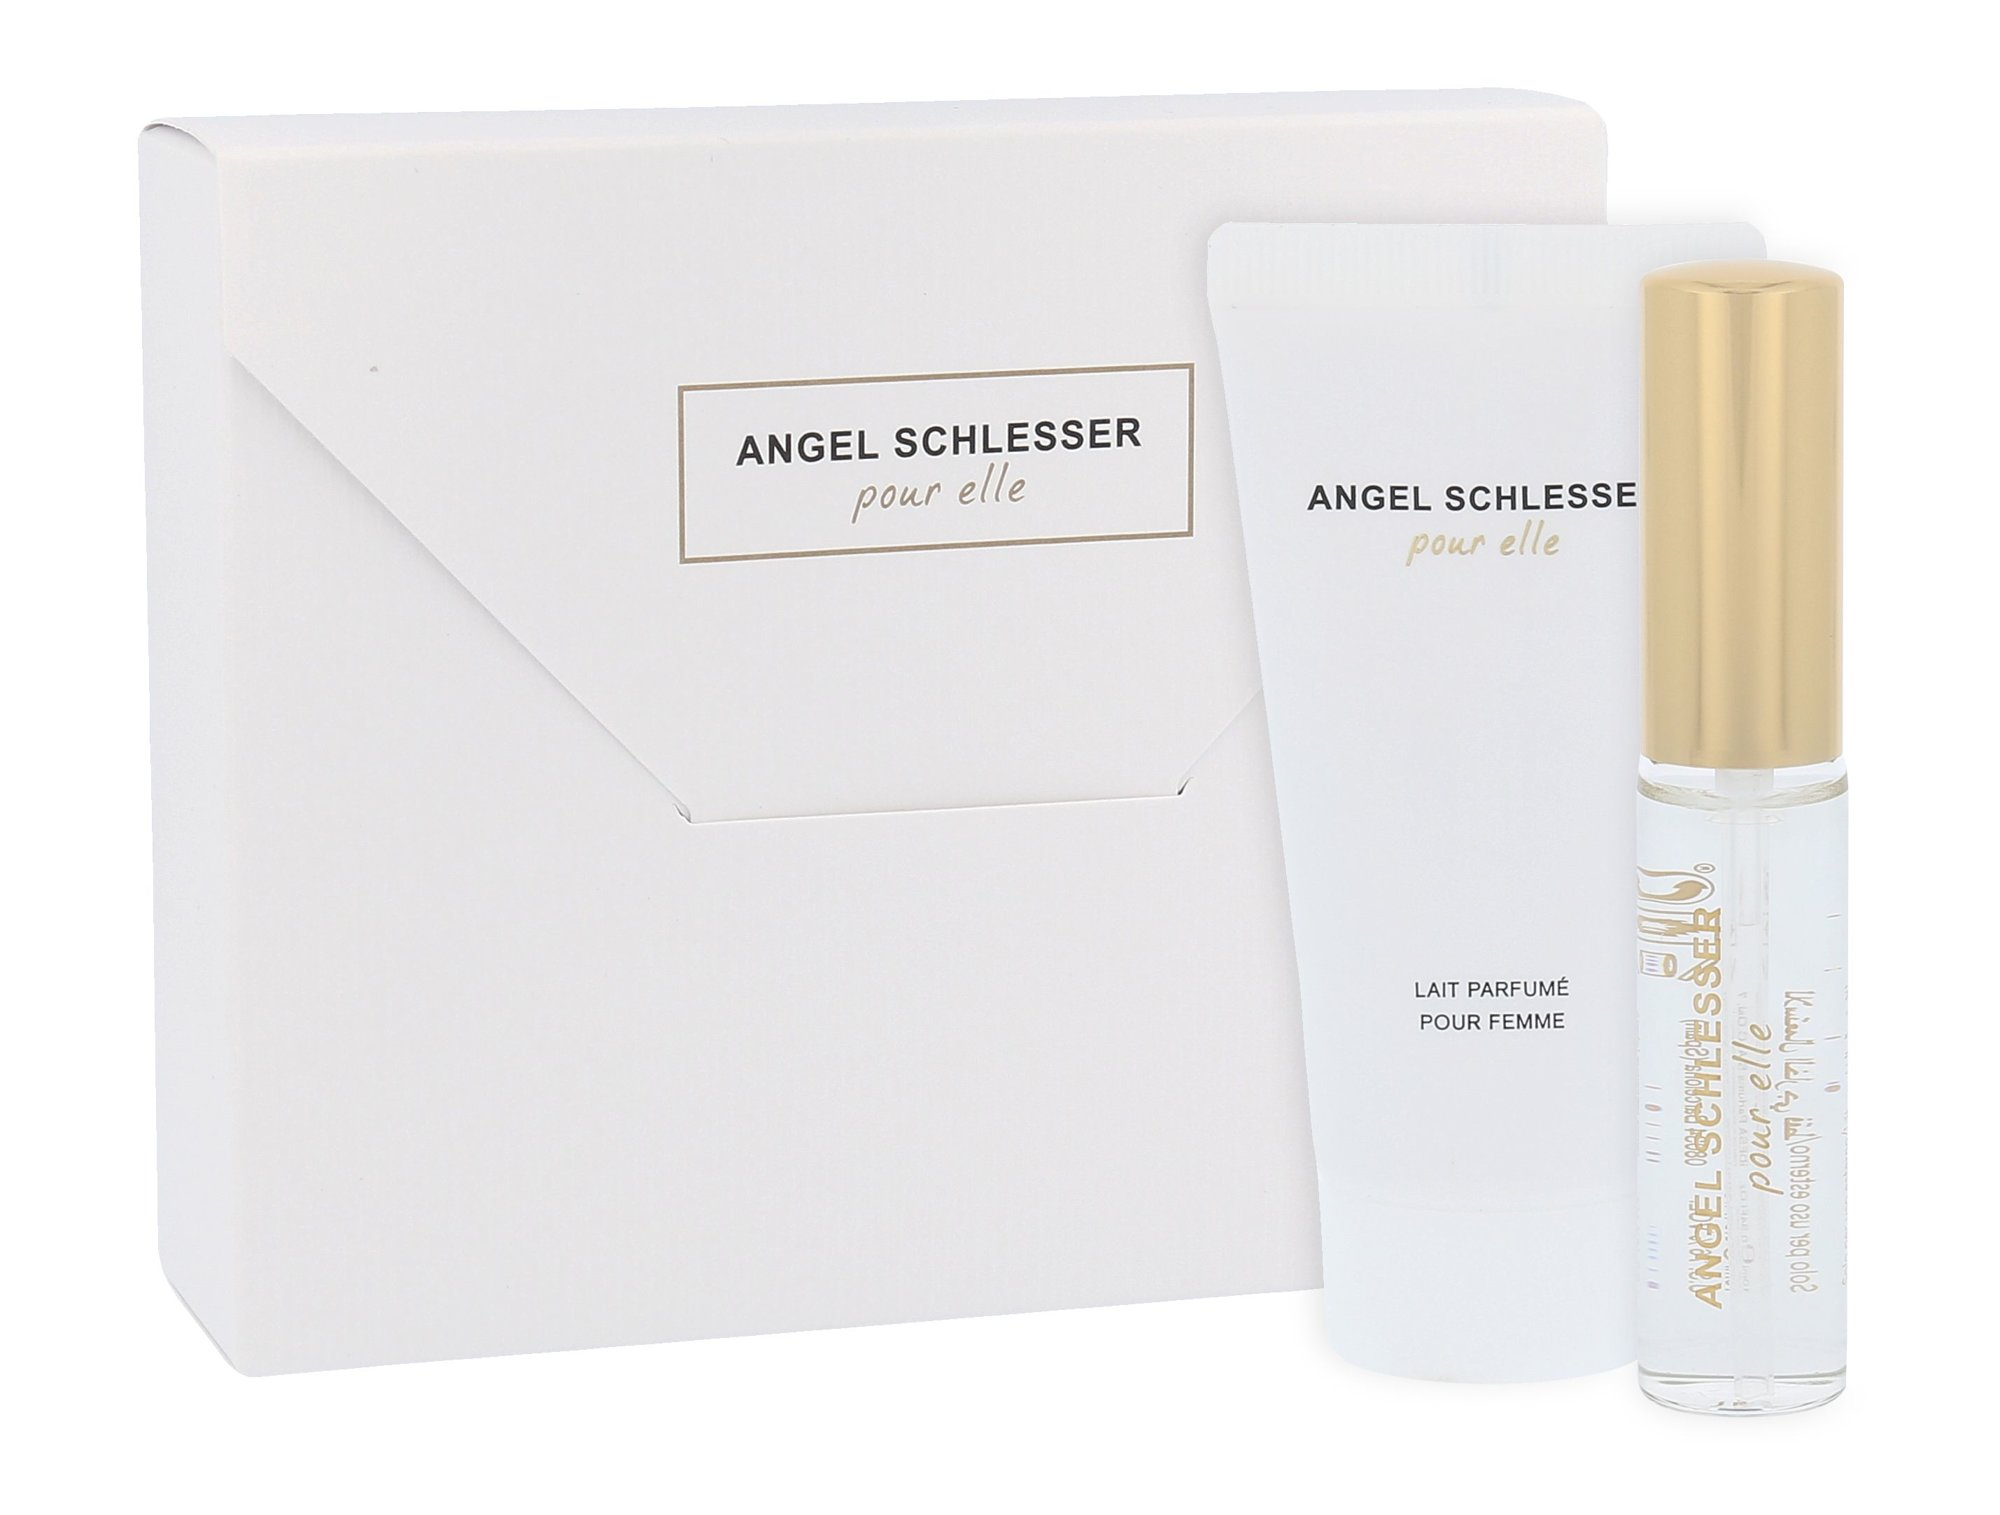 Angel Schlesser Pour Elle Body lotion 100ml